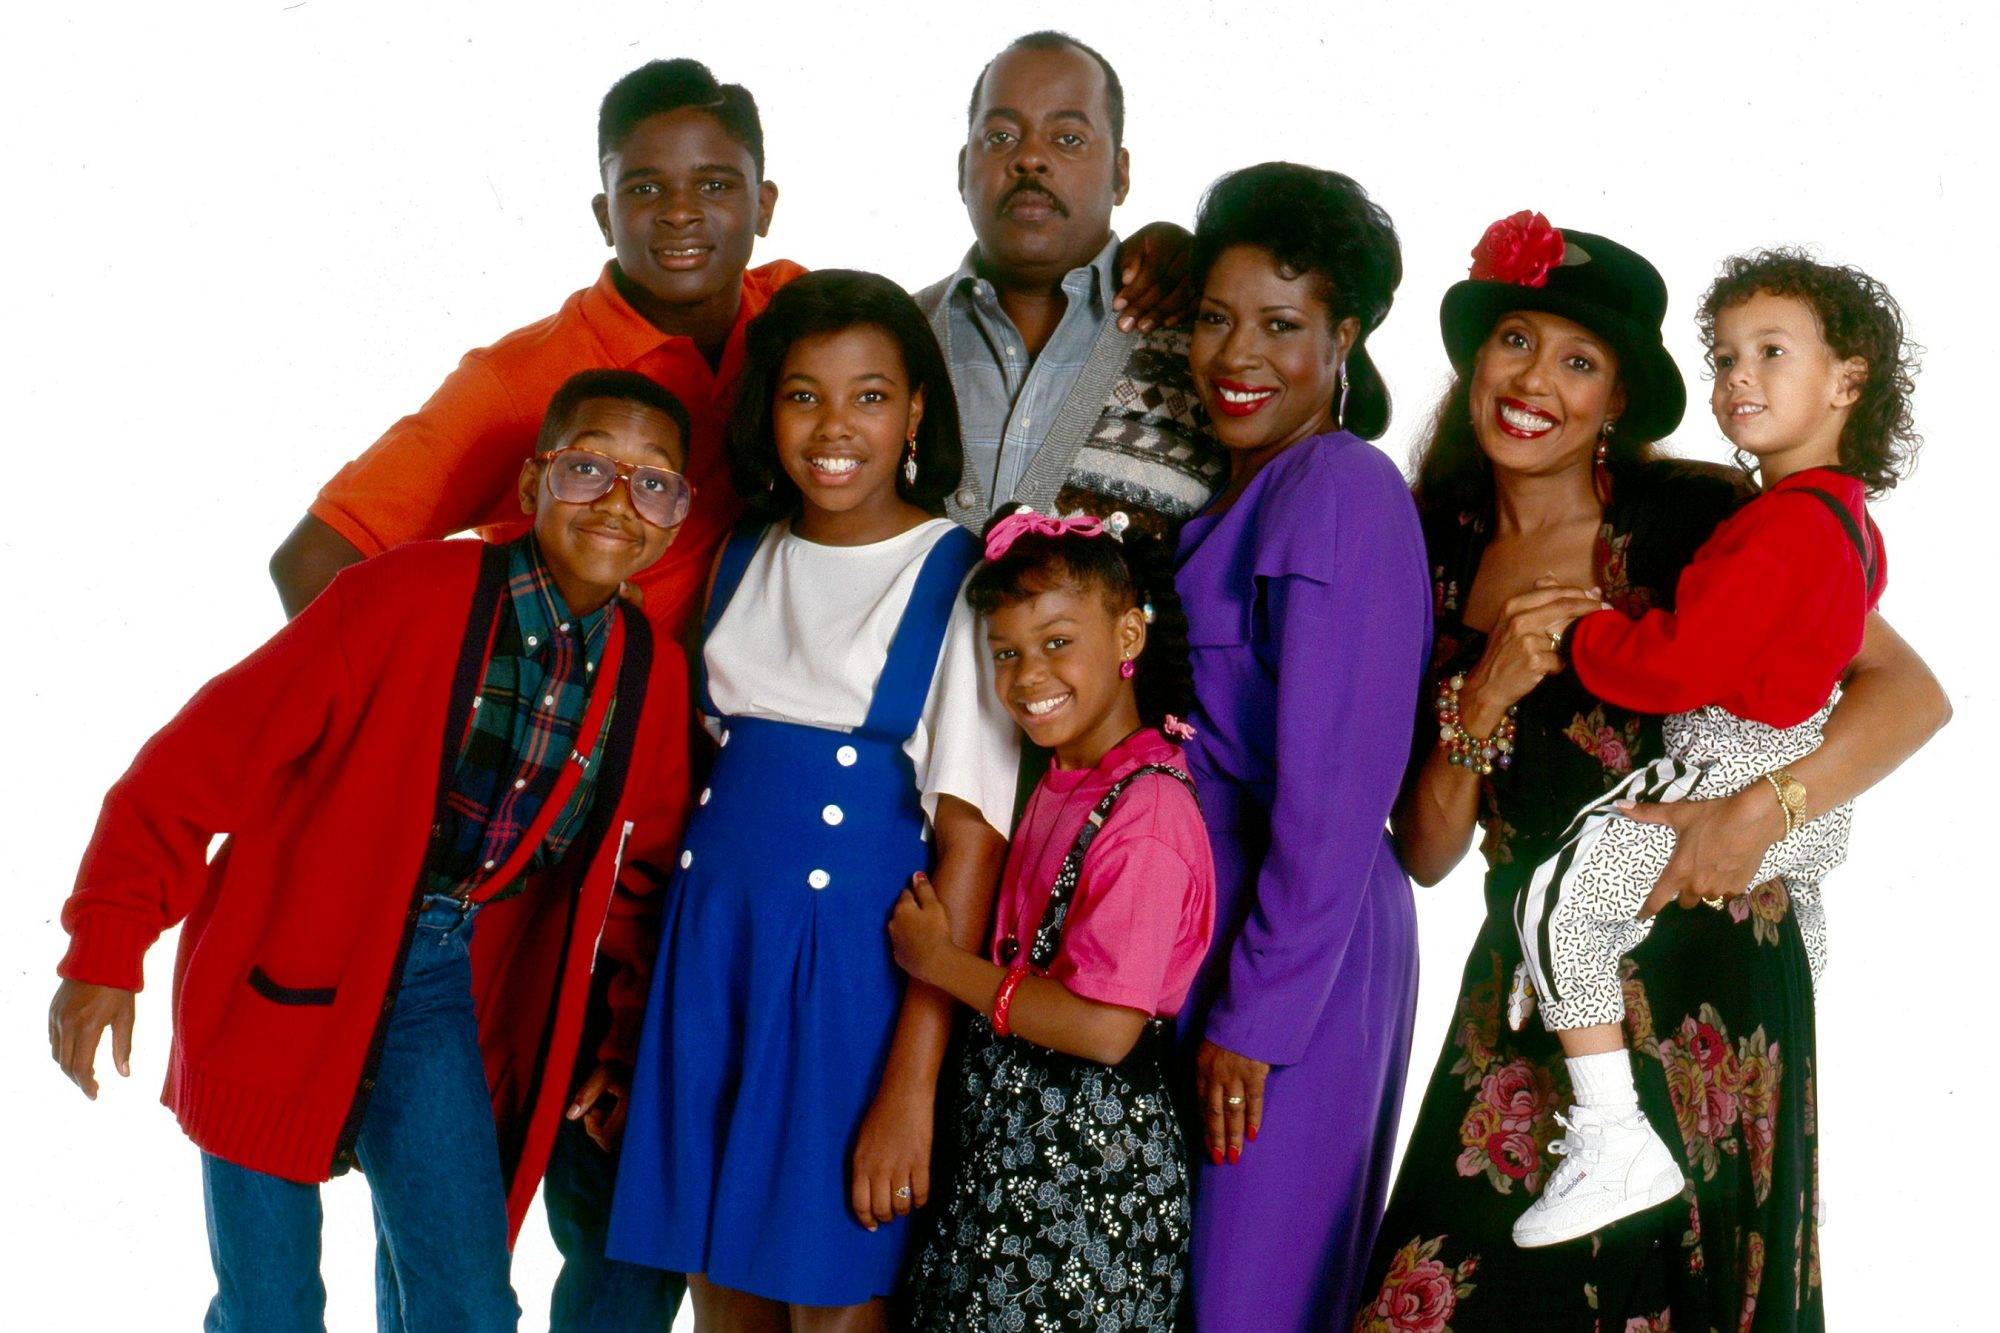 JALEEL WHITE;DARIUS MCCRARY;KELLIE SHANYGNE WILLIAMS;REGINALD VELJOHNSON;JAIMEE FOXWORTH;JOMARIE PAYTON;TELMA HOPKINS;BRYTON JAMES